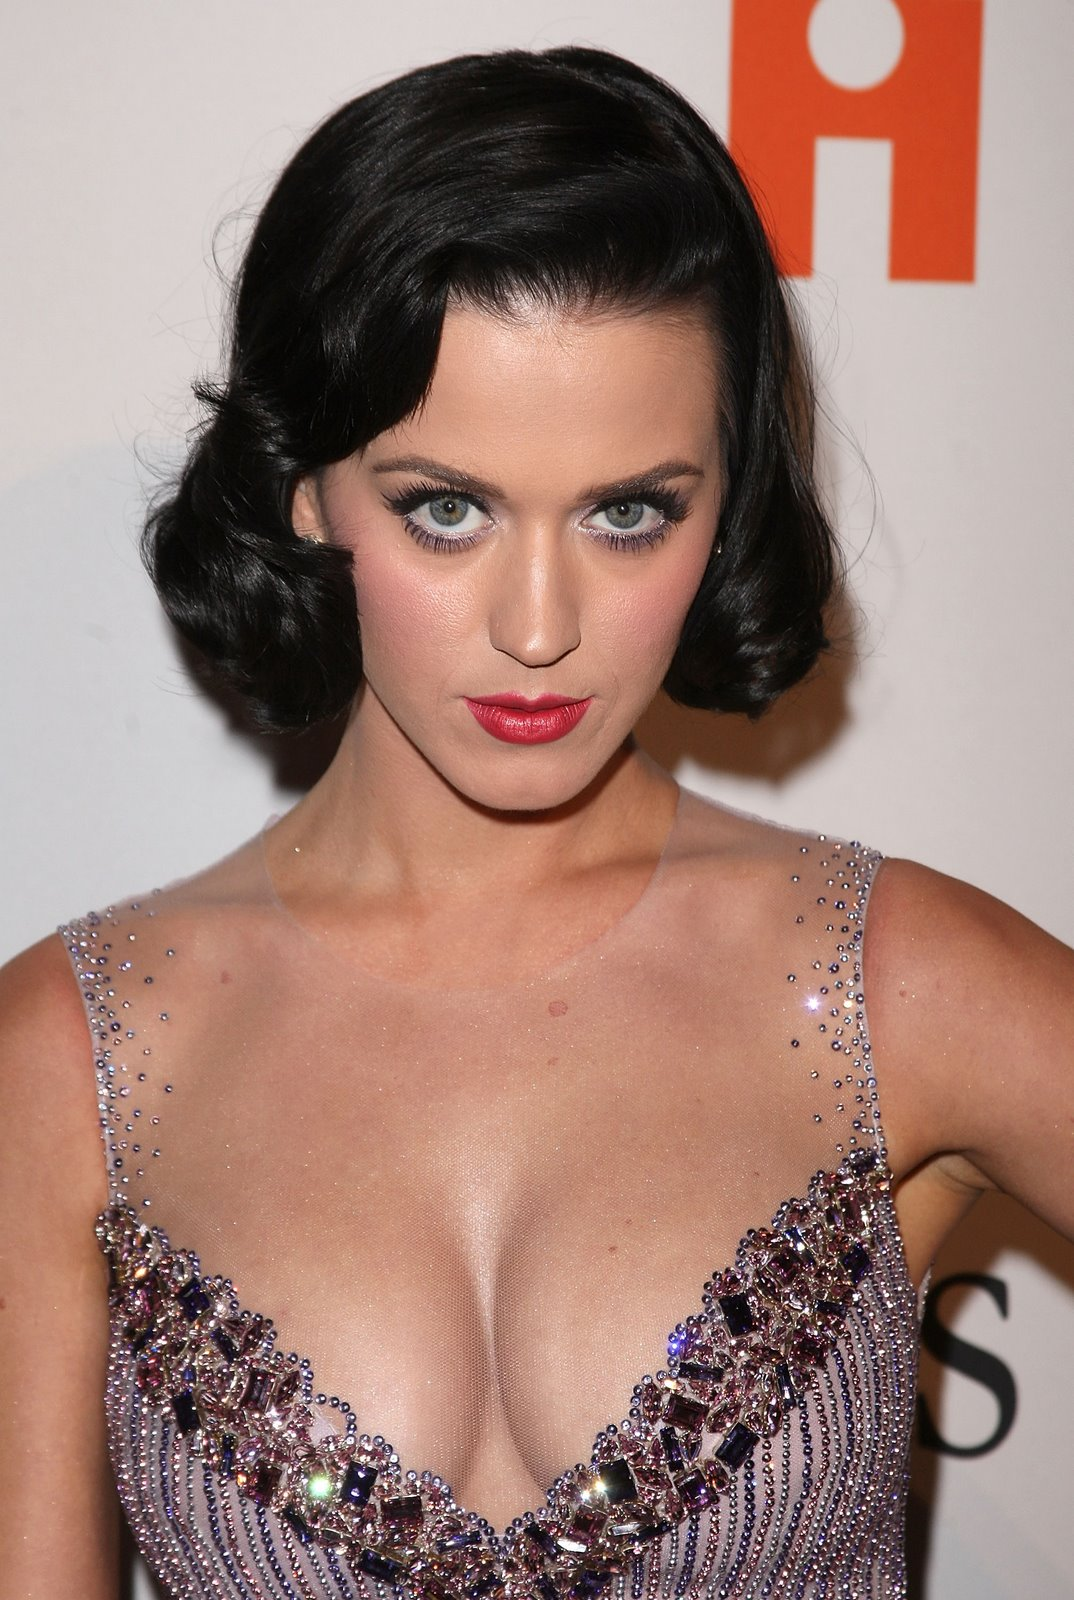 Katy perry bikini wallpapers